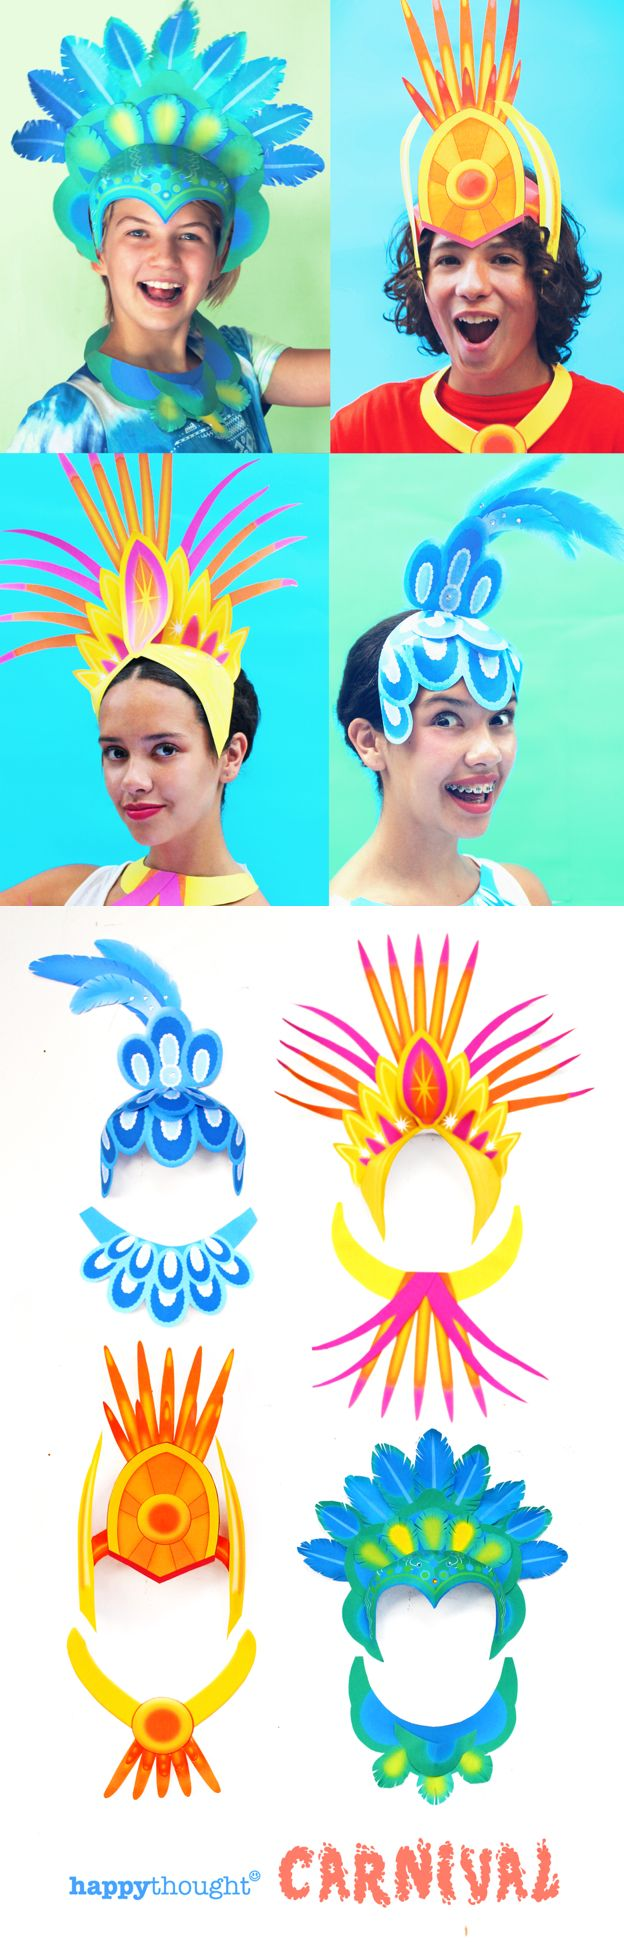 DIY Carnival crowns and necklaces made of paper! Printable templates at happythought.co.uk